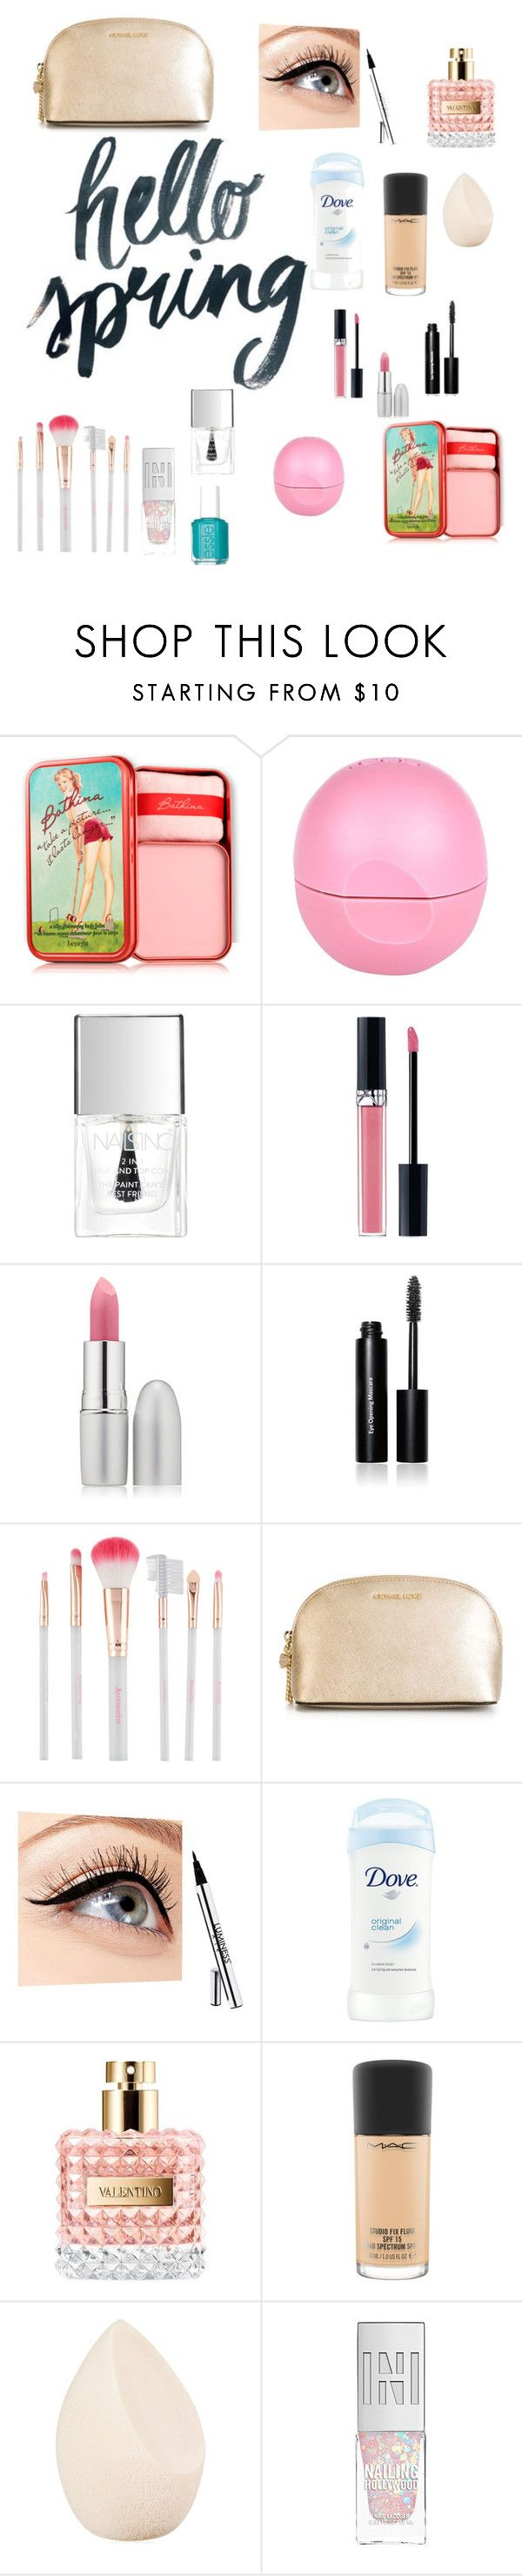 """Untitled #45"" by rayan-2000 ❤ liked on Polyvore featuring beauty, Benefit, River Island, Lipsy, Christian Dior, TheBalm, Bobbi Brown Cosmetics, Accessorize, MICHAEL Michael Kors and Luminess Air"